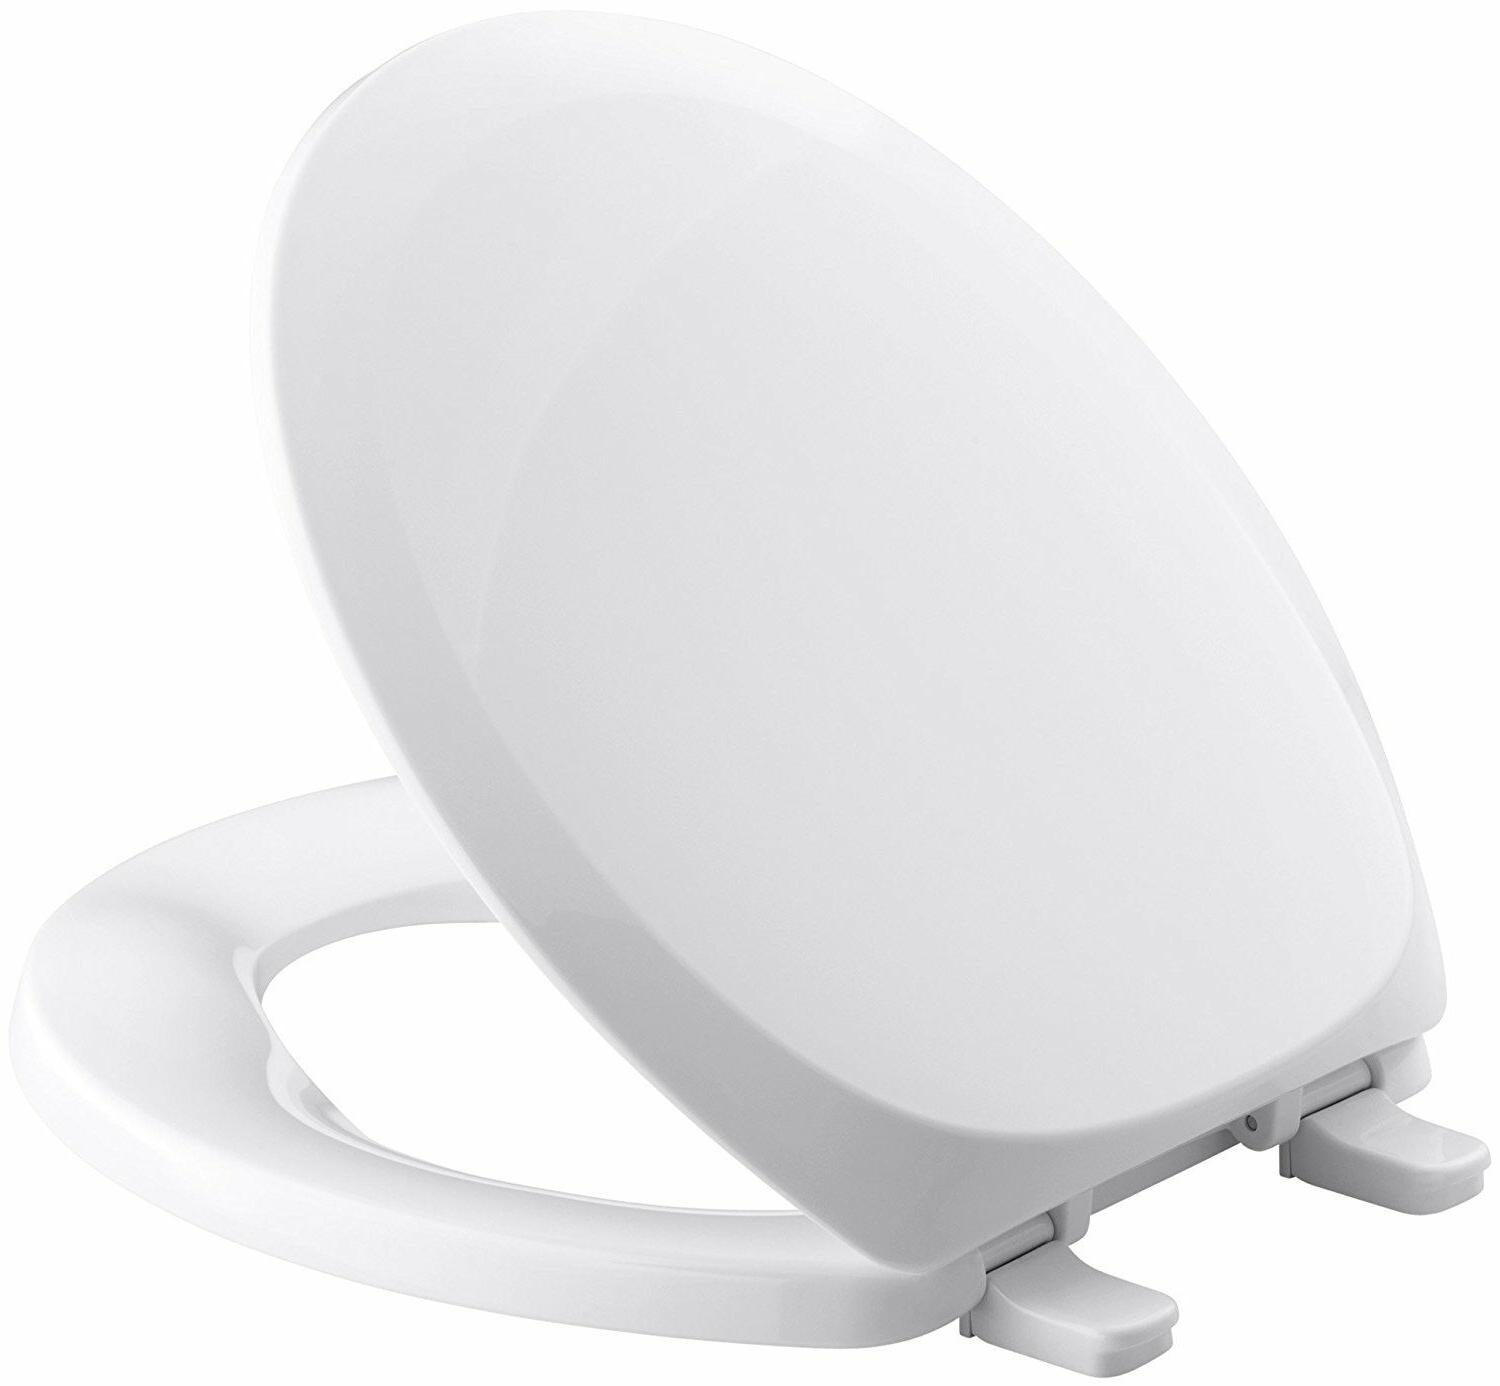 French Curve Round Closed-Front Toilet Seat and Cover - Fini